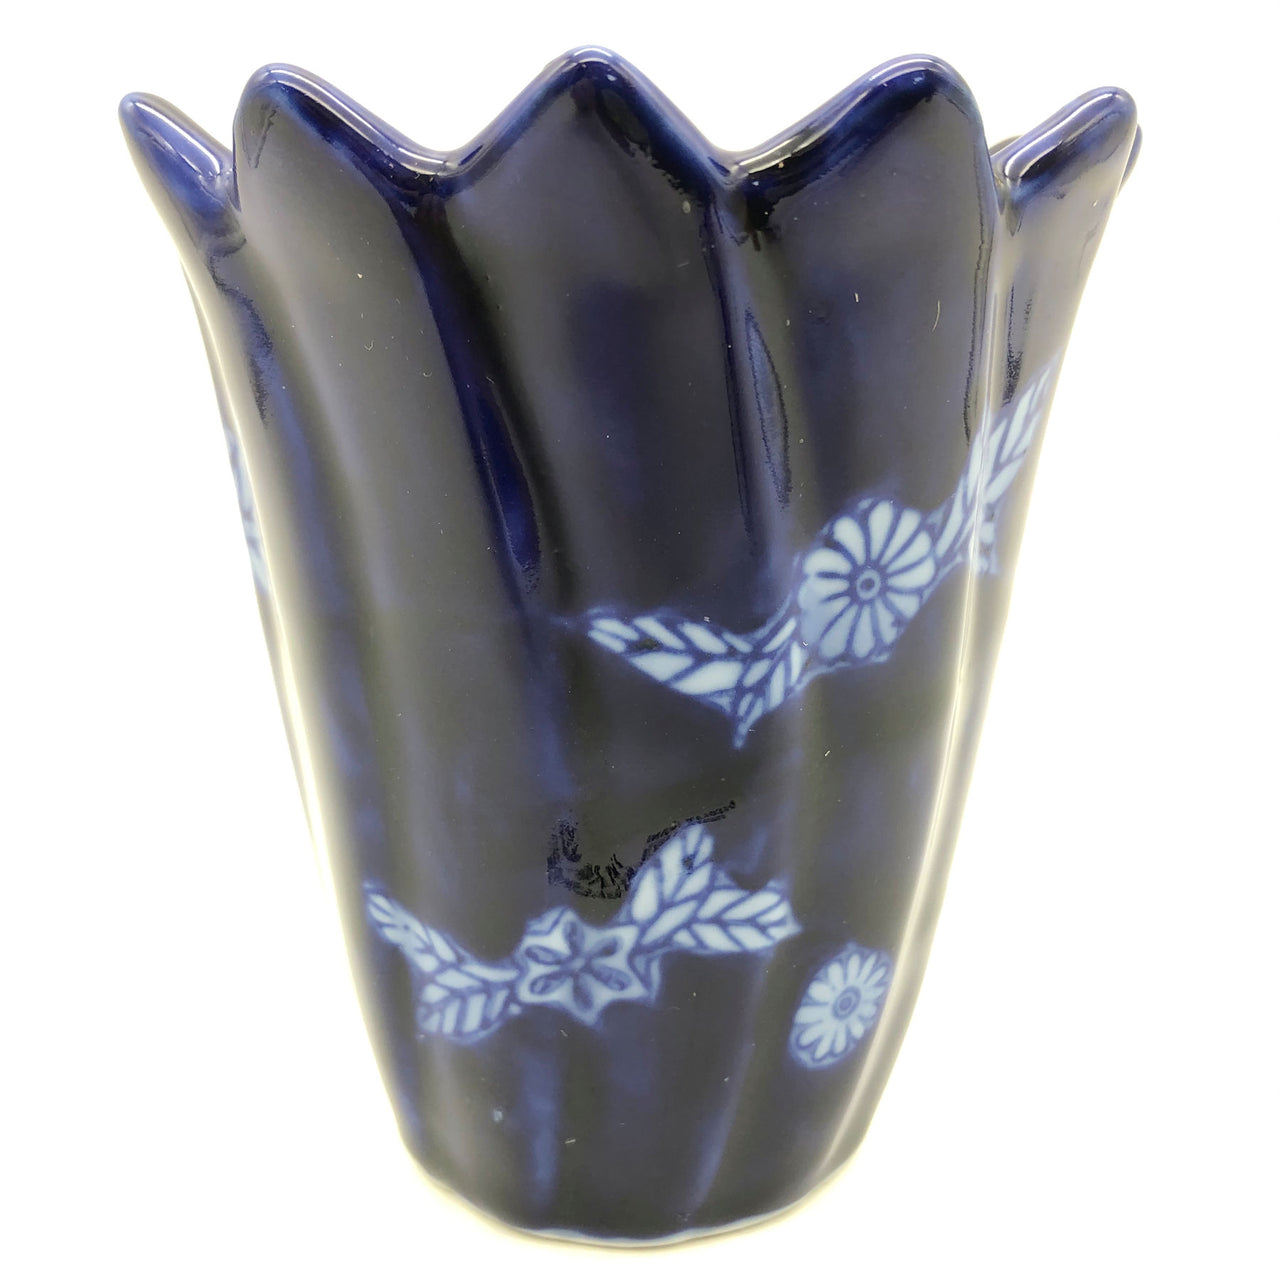 "Bombay Company Blue Ceramic Candle Holder and Candle 4-1/4"" Tall"